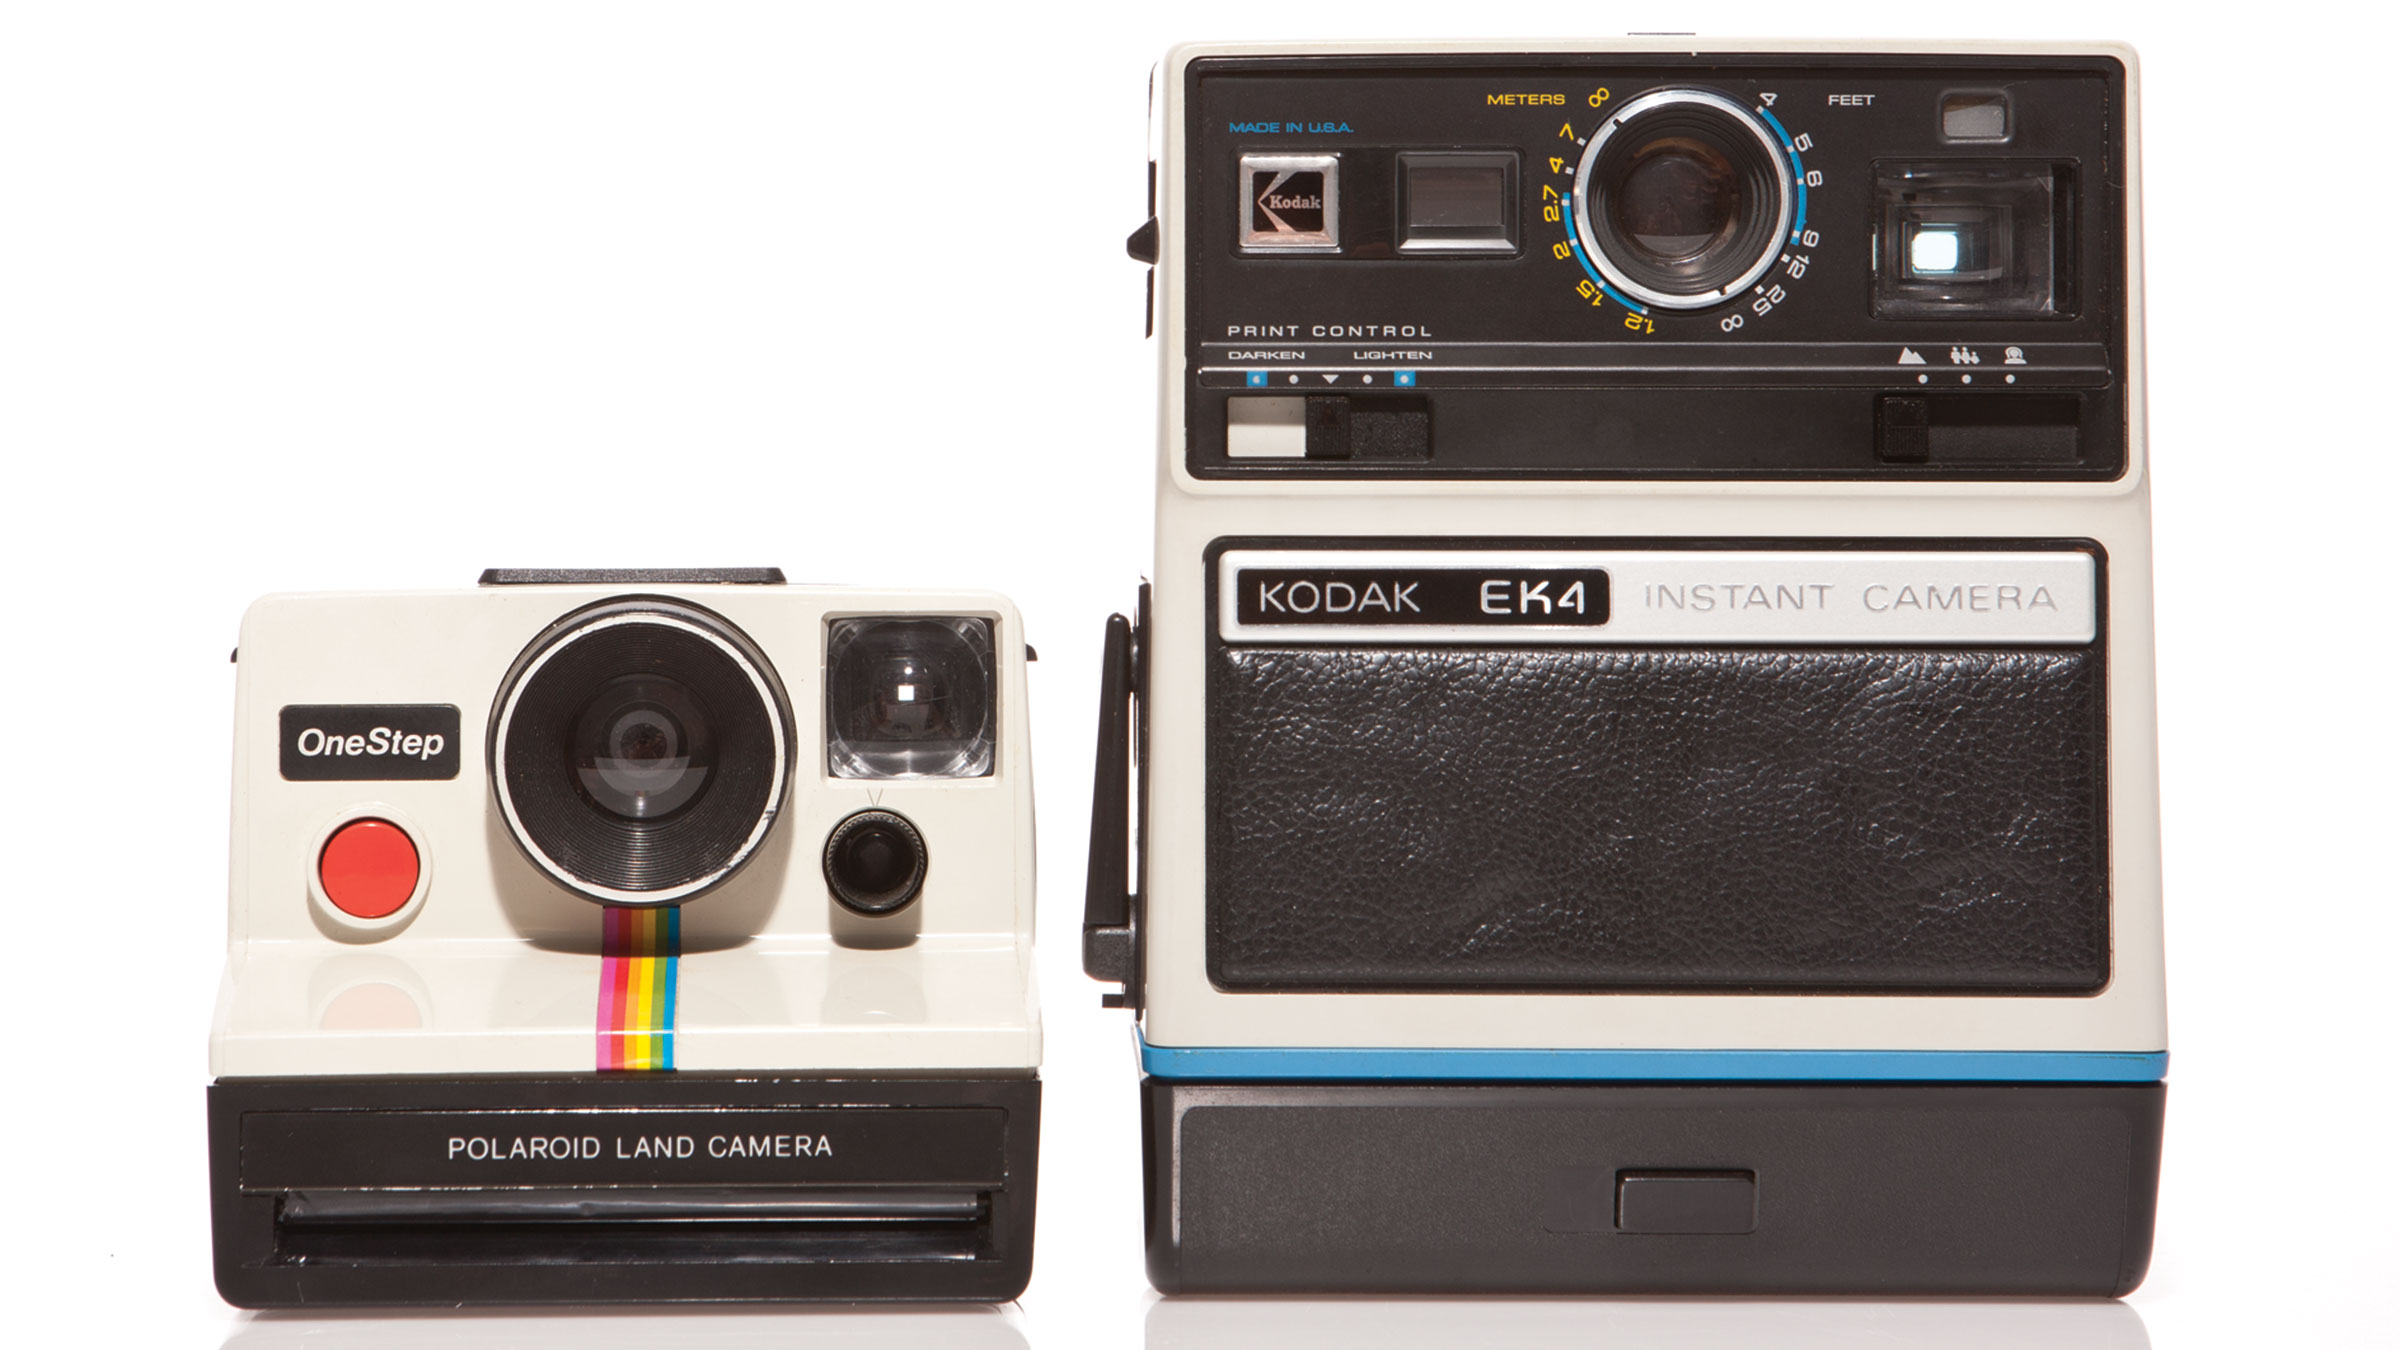 Lessons for Apple, Instagram, and others from Polaroid's past and